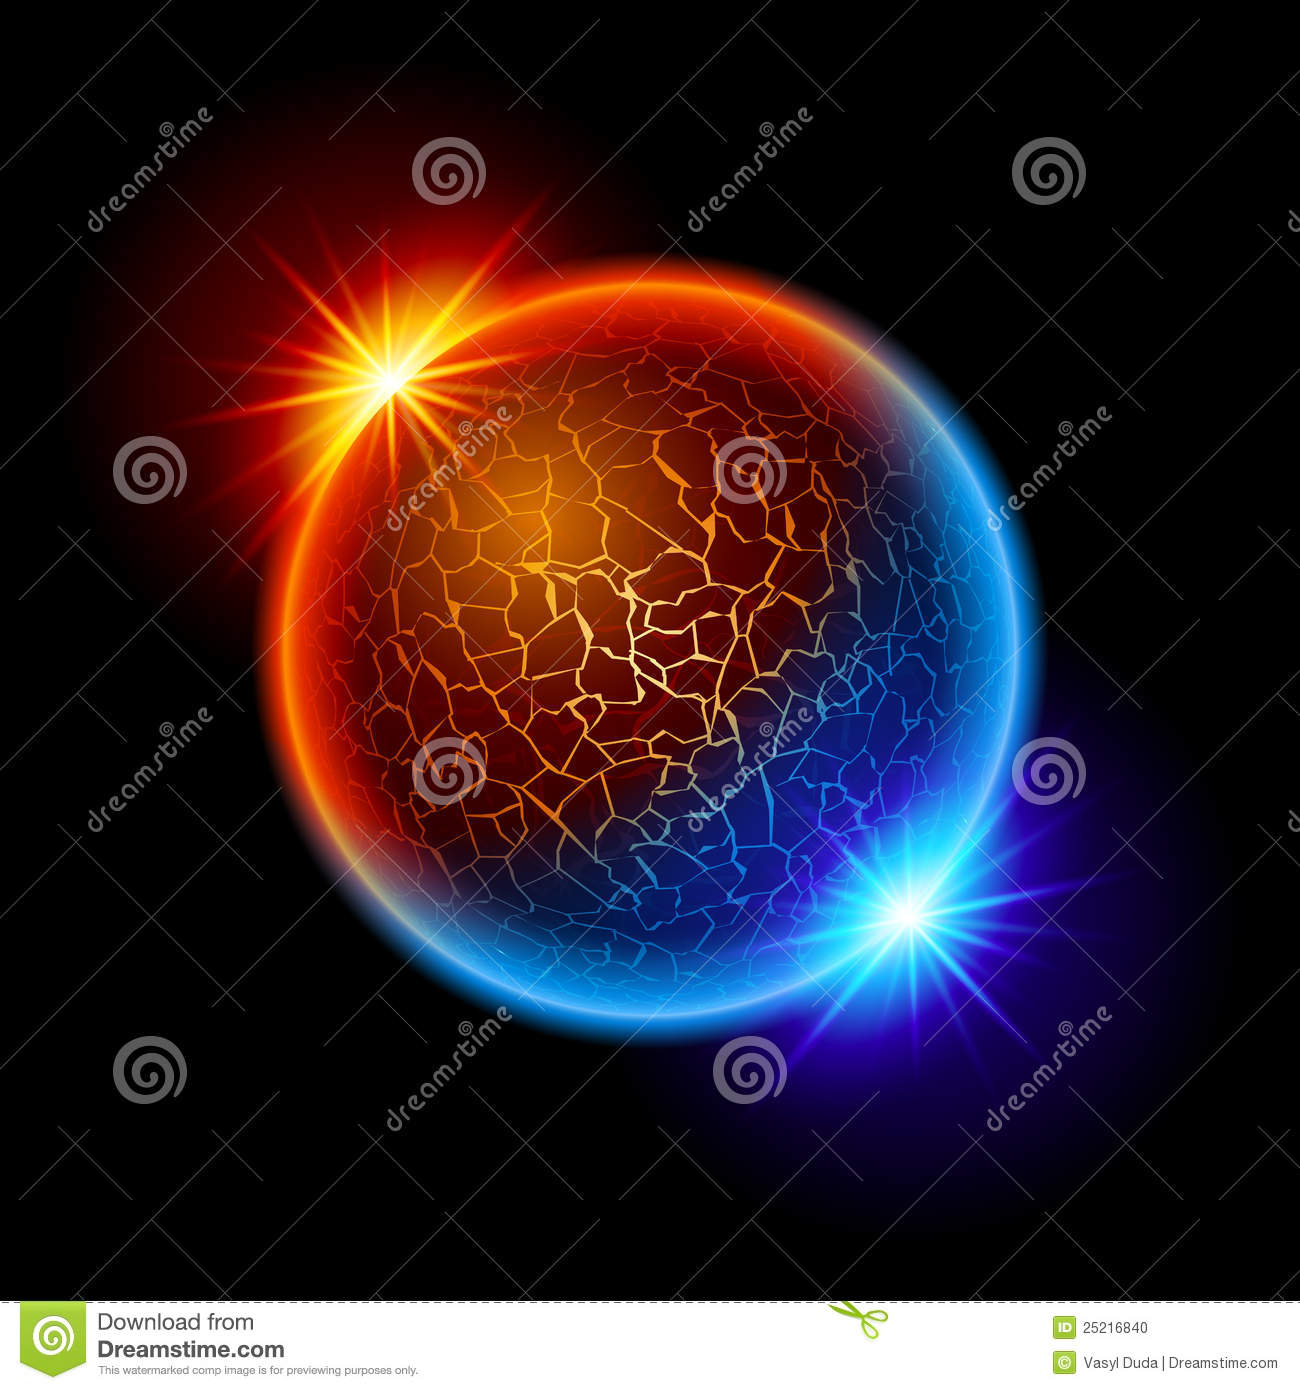 Fire and ice ball planet stock vector. Image of global - 25216840